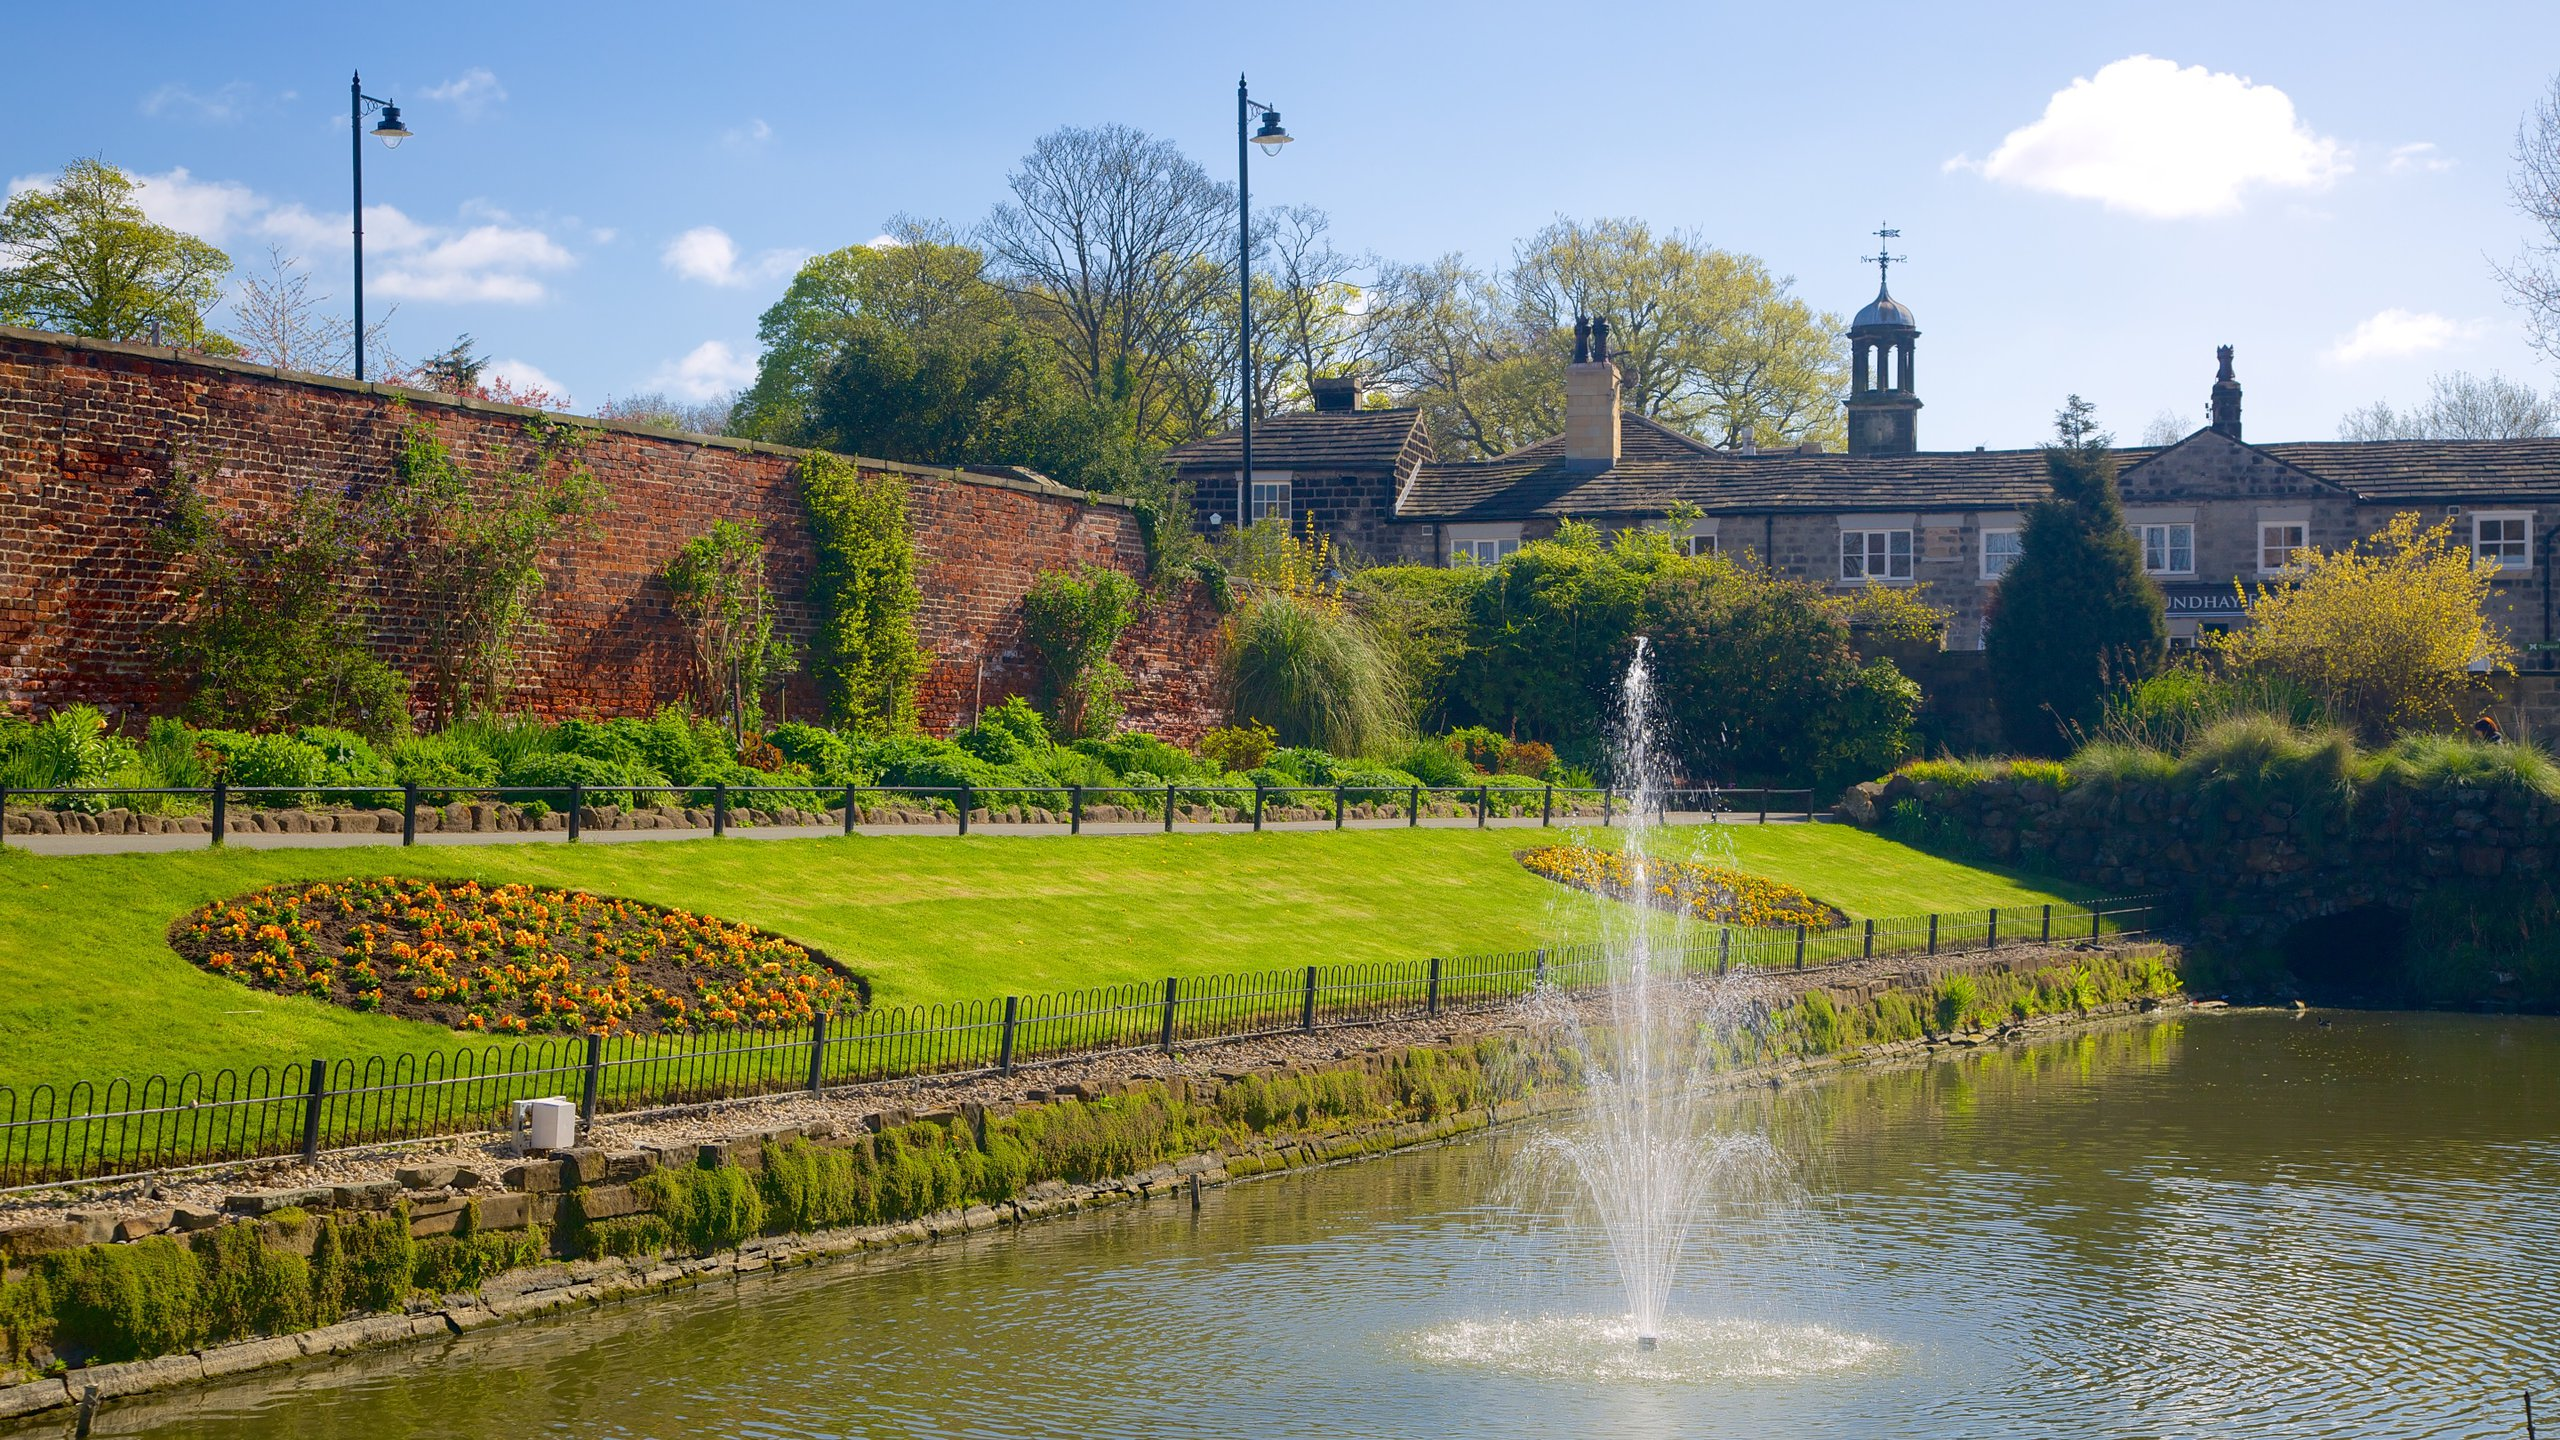 One of the largest city parks in Europe has a huge expanse of parkland, woods, lakes, gardens and lush tropical glasshouses to explore and enjoy.